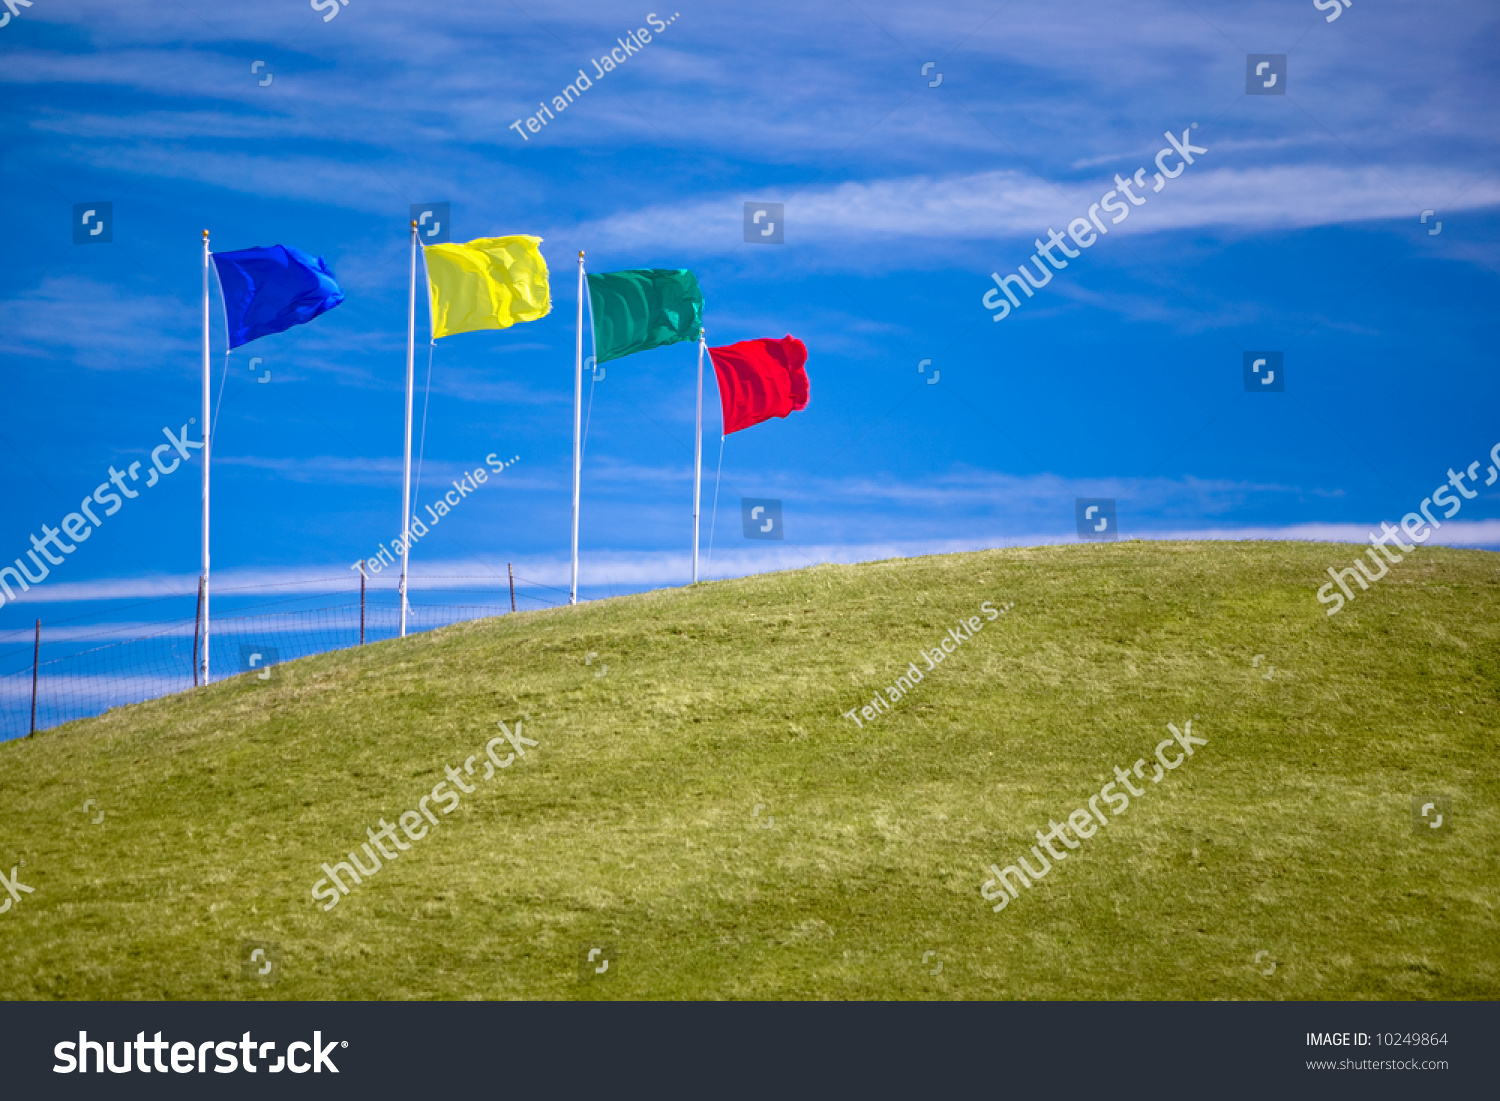 Four colorful flags on green grassy hill invite shoppers to attend an open house or other sales event.  Ample room for copy. #10249864